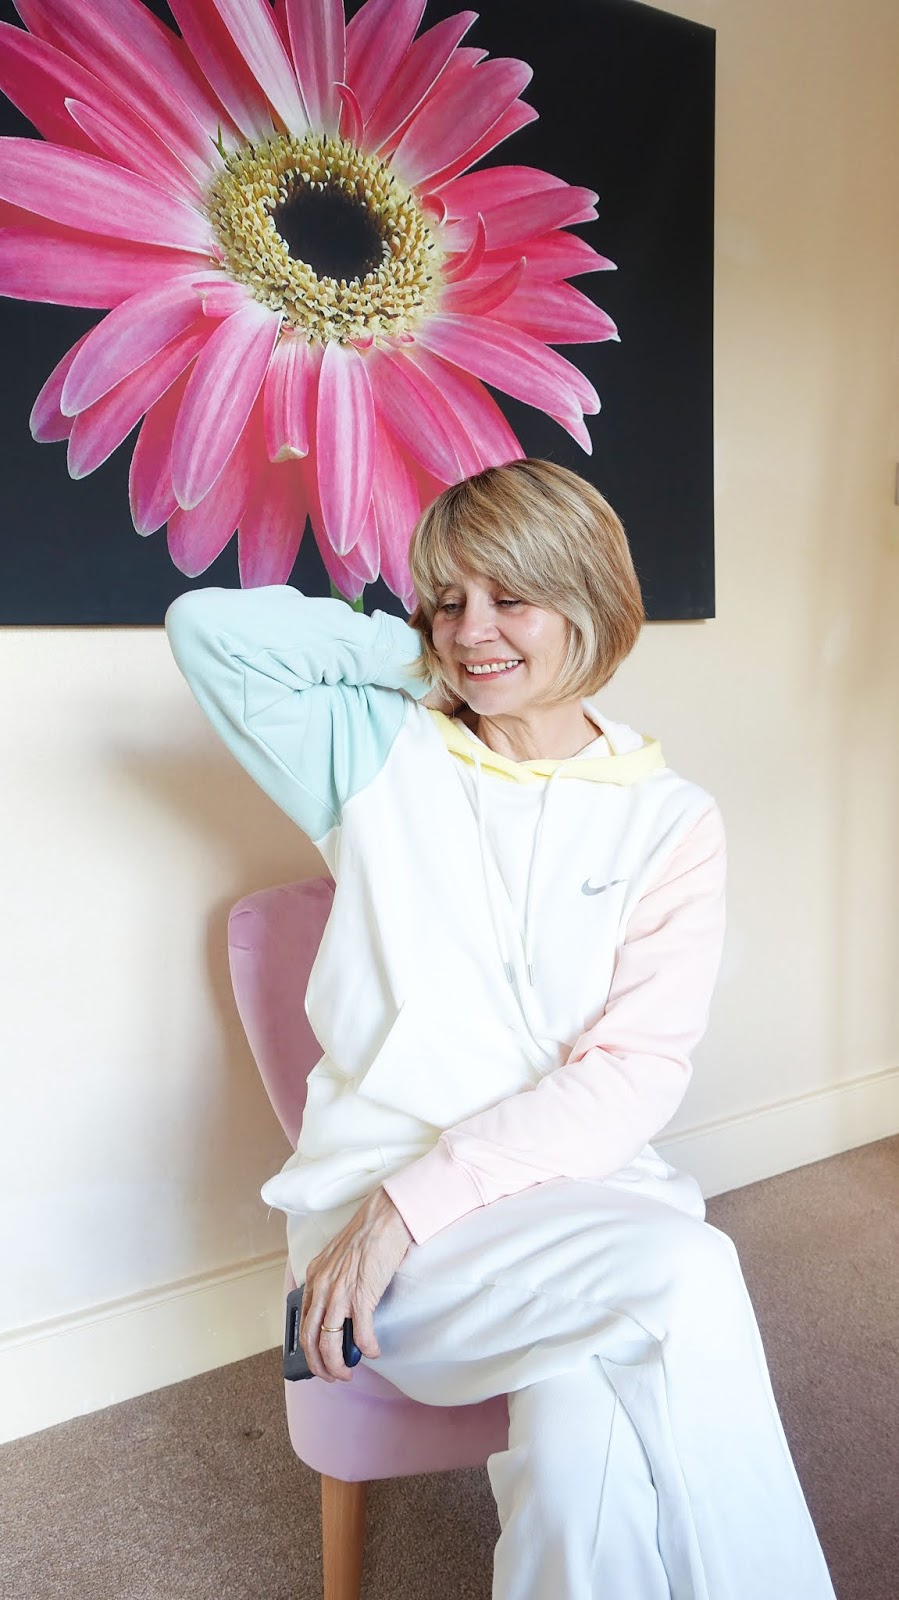 Gail Hanlon from Is This Mutton snapped up this Nike oatmeal and pastel hoody and pants in July and it's already sold out